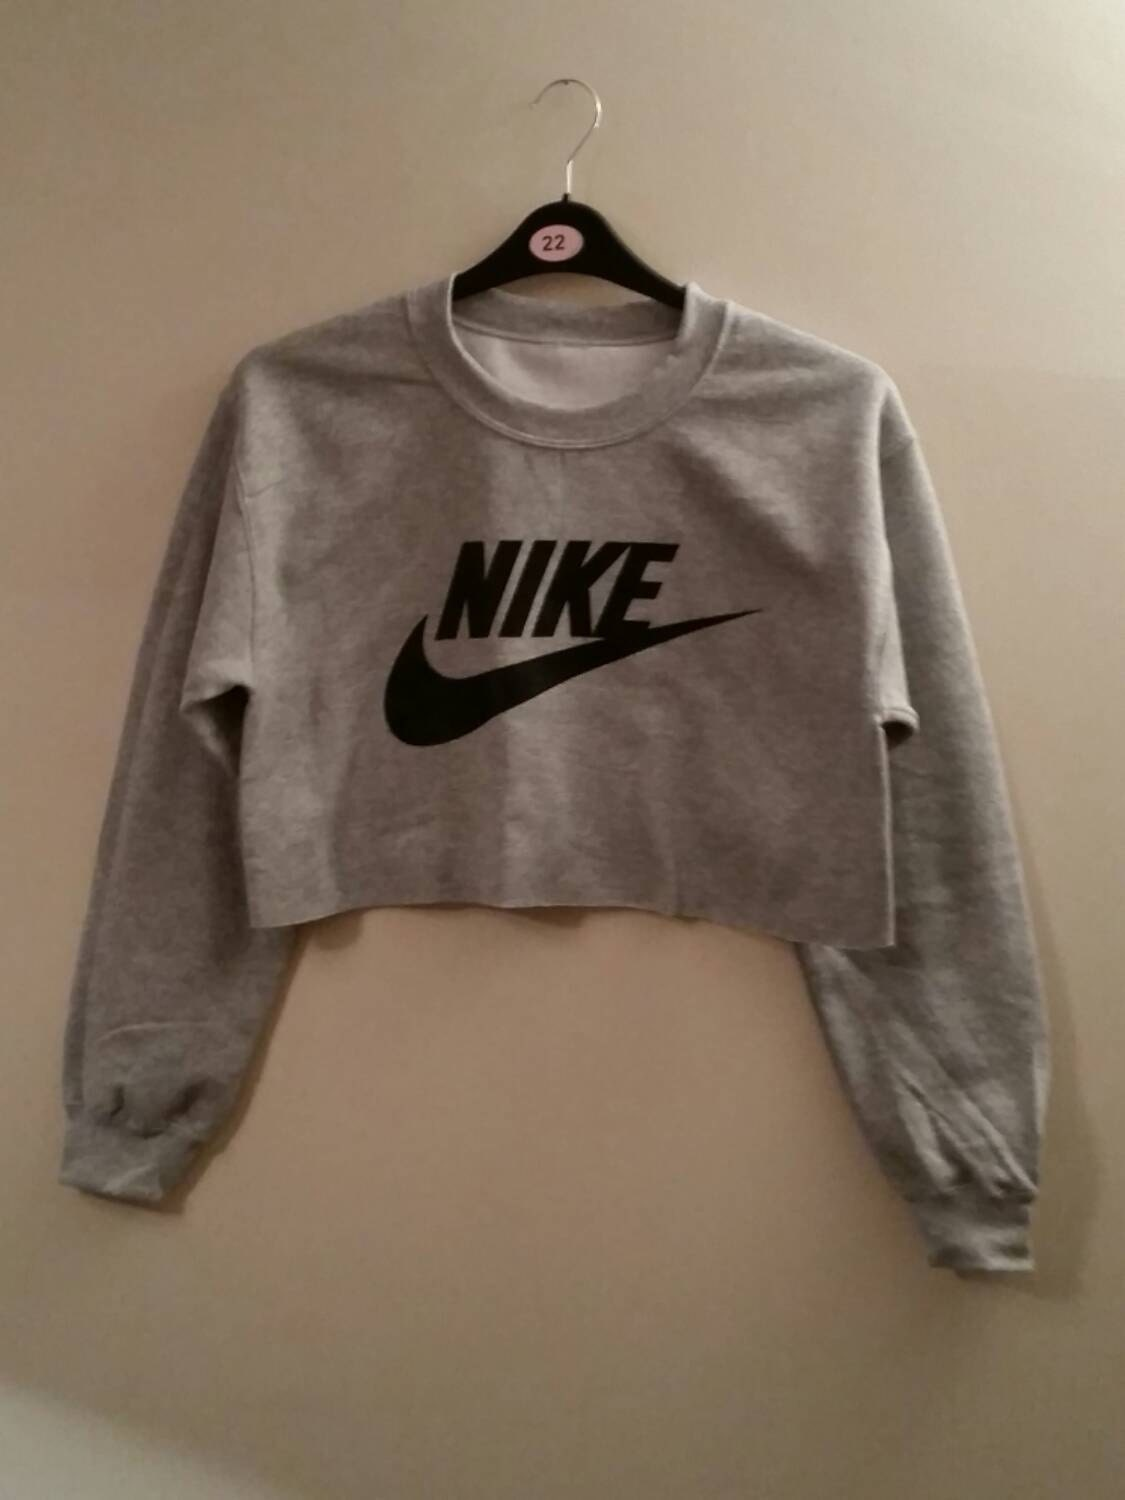 unisex customised nike cropped jumper sweatshirt by. Black Bedroom Furniture Sets. Home Design Ideas